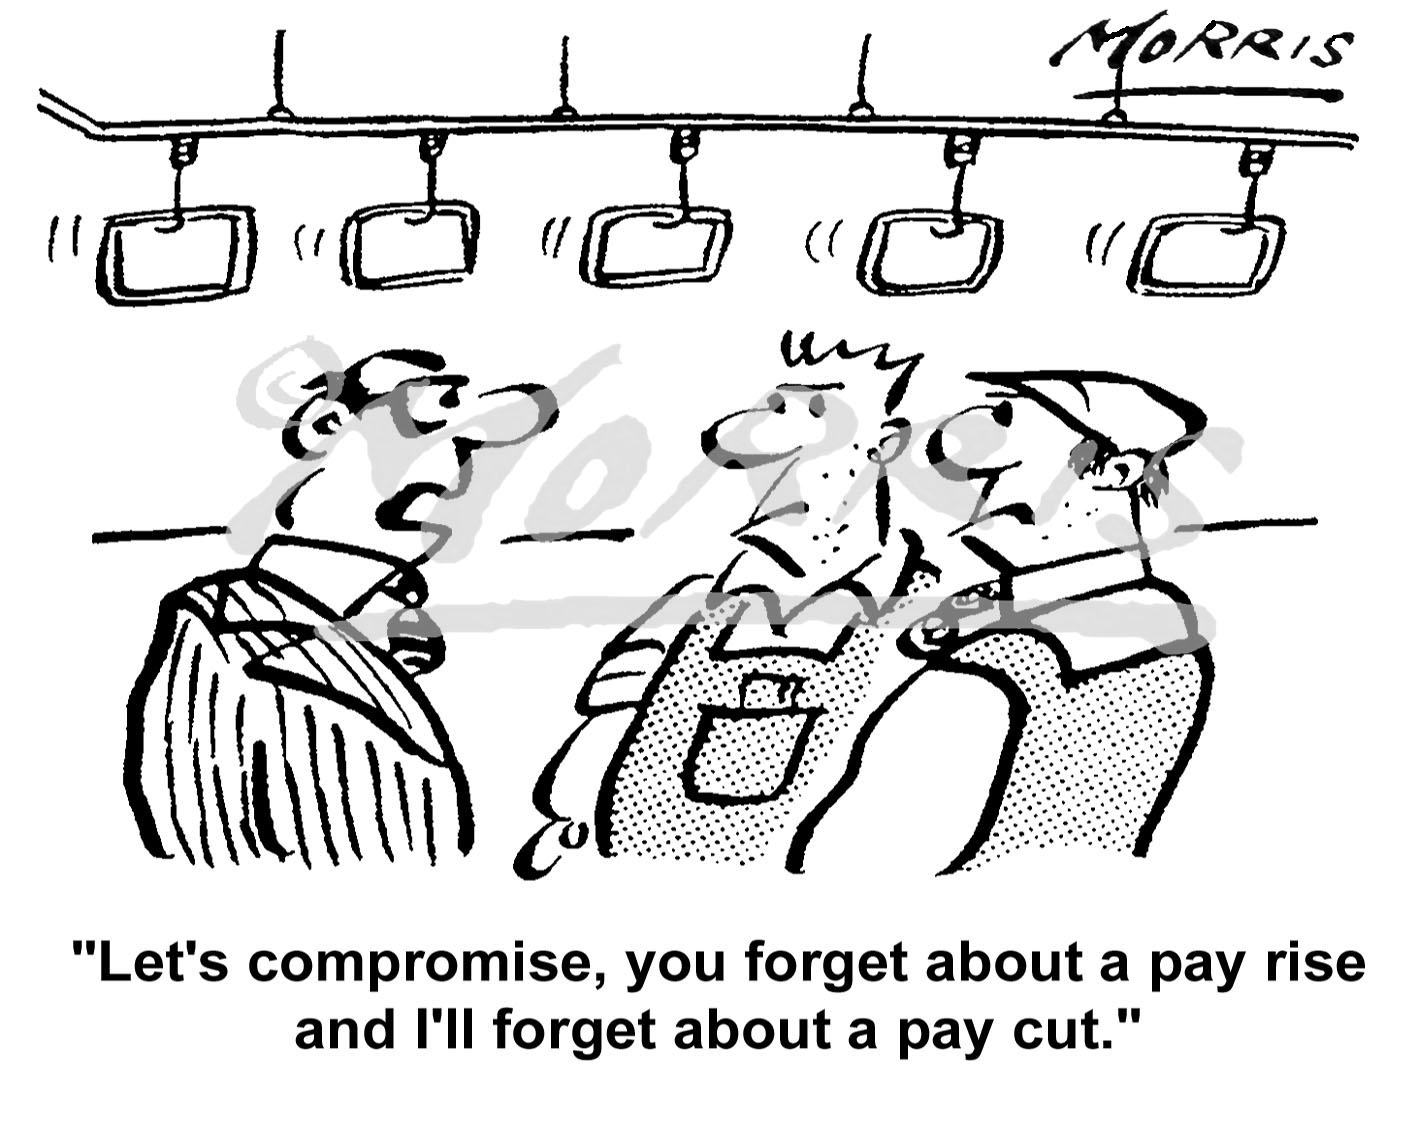 Management shop floor workers pay rise pay cut cartoon – Ref: 5042bw